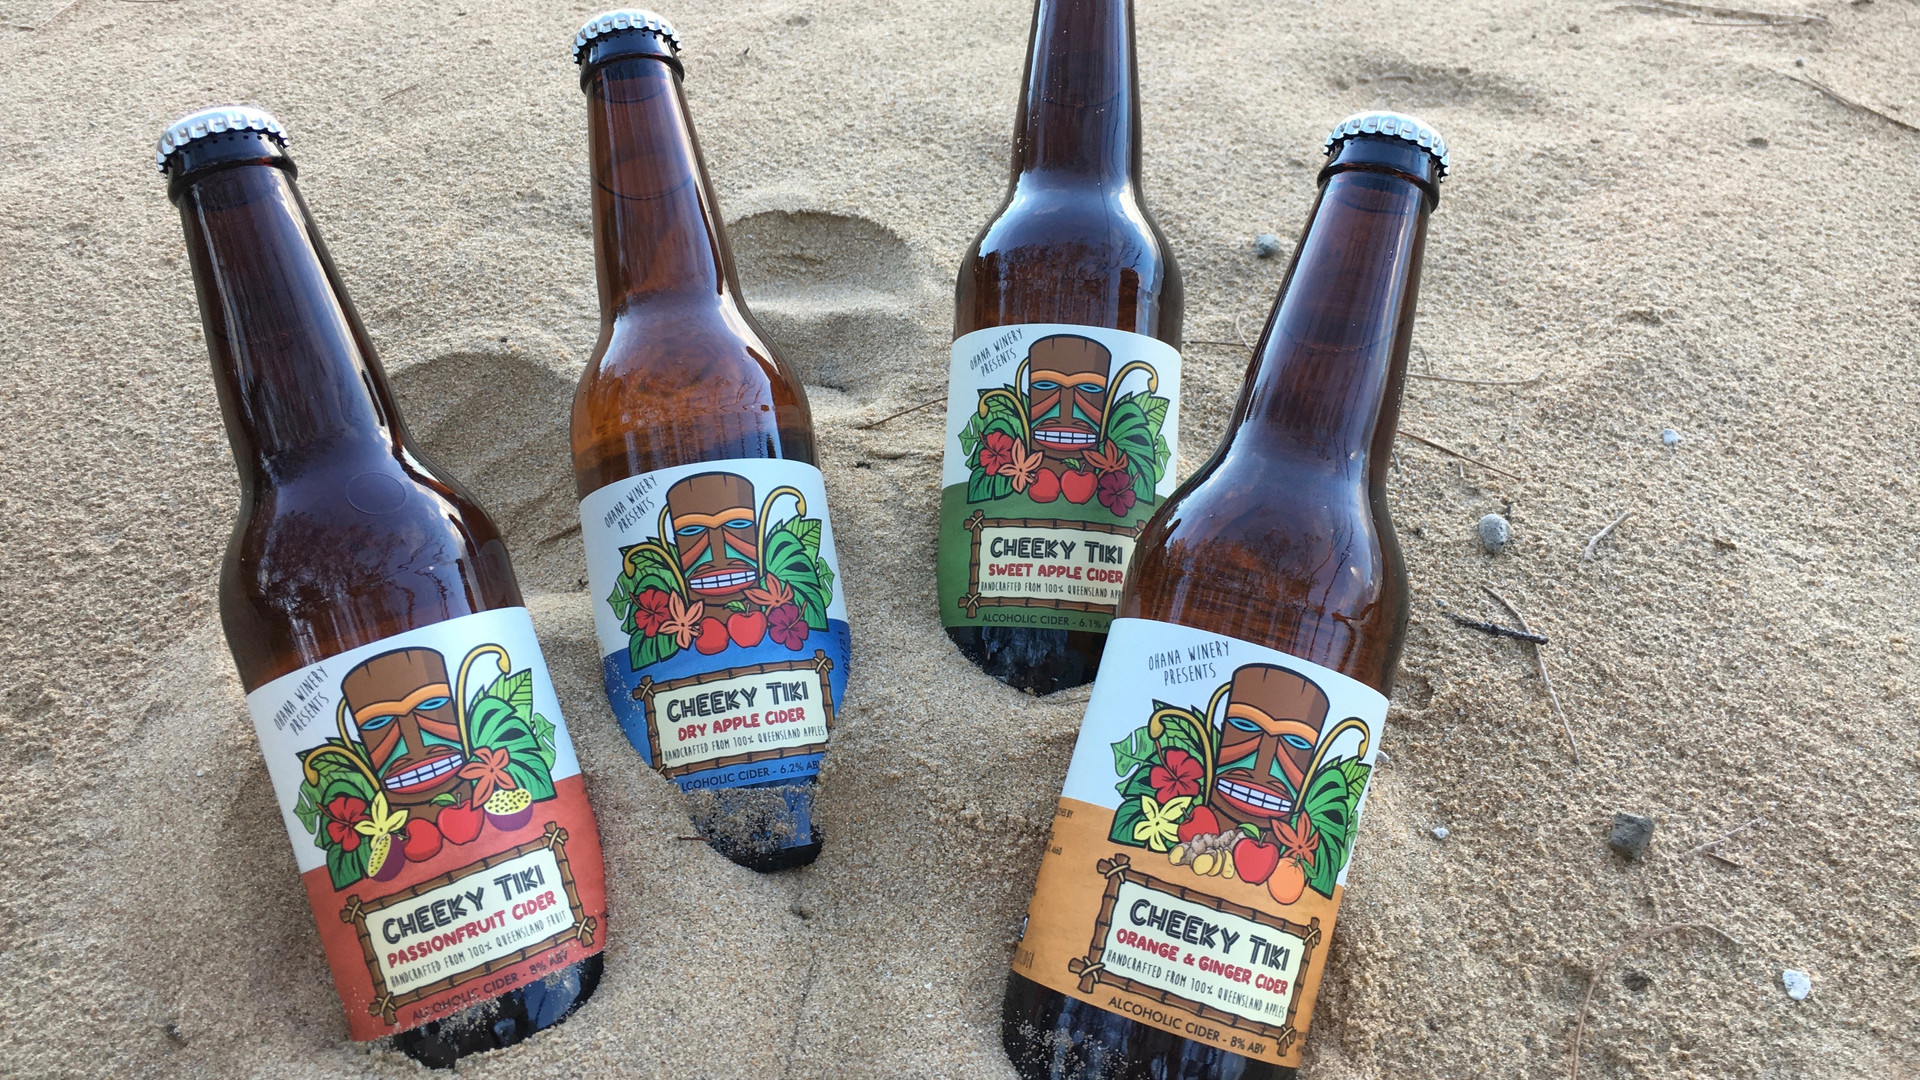 Four bottles of apple cider pushed into beach sand